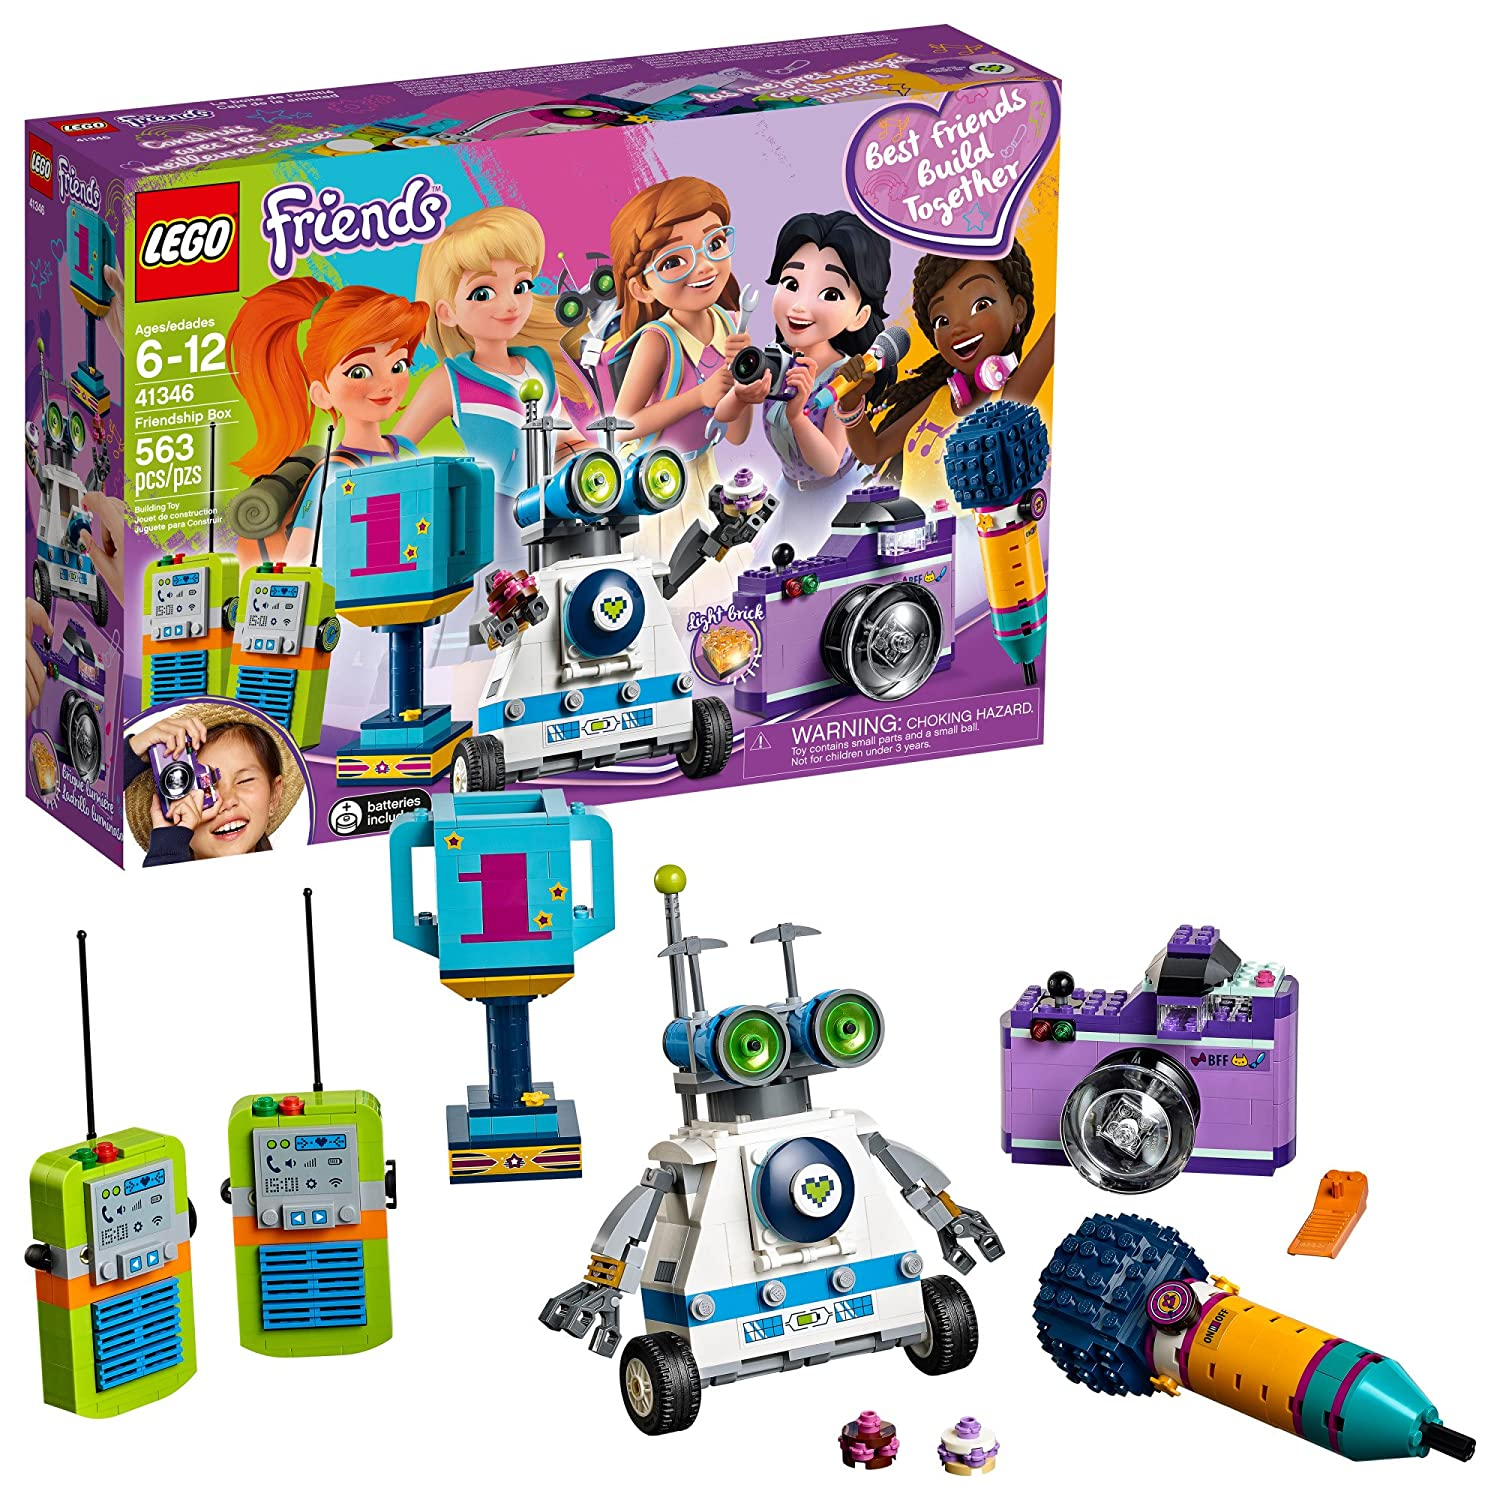 LEGO Friends Friendship Box 41346 Building Kit (563 Piece) 6213494